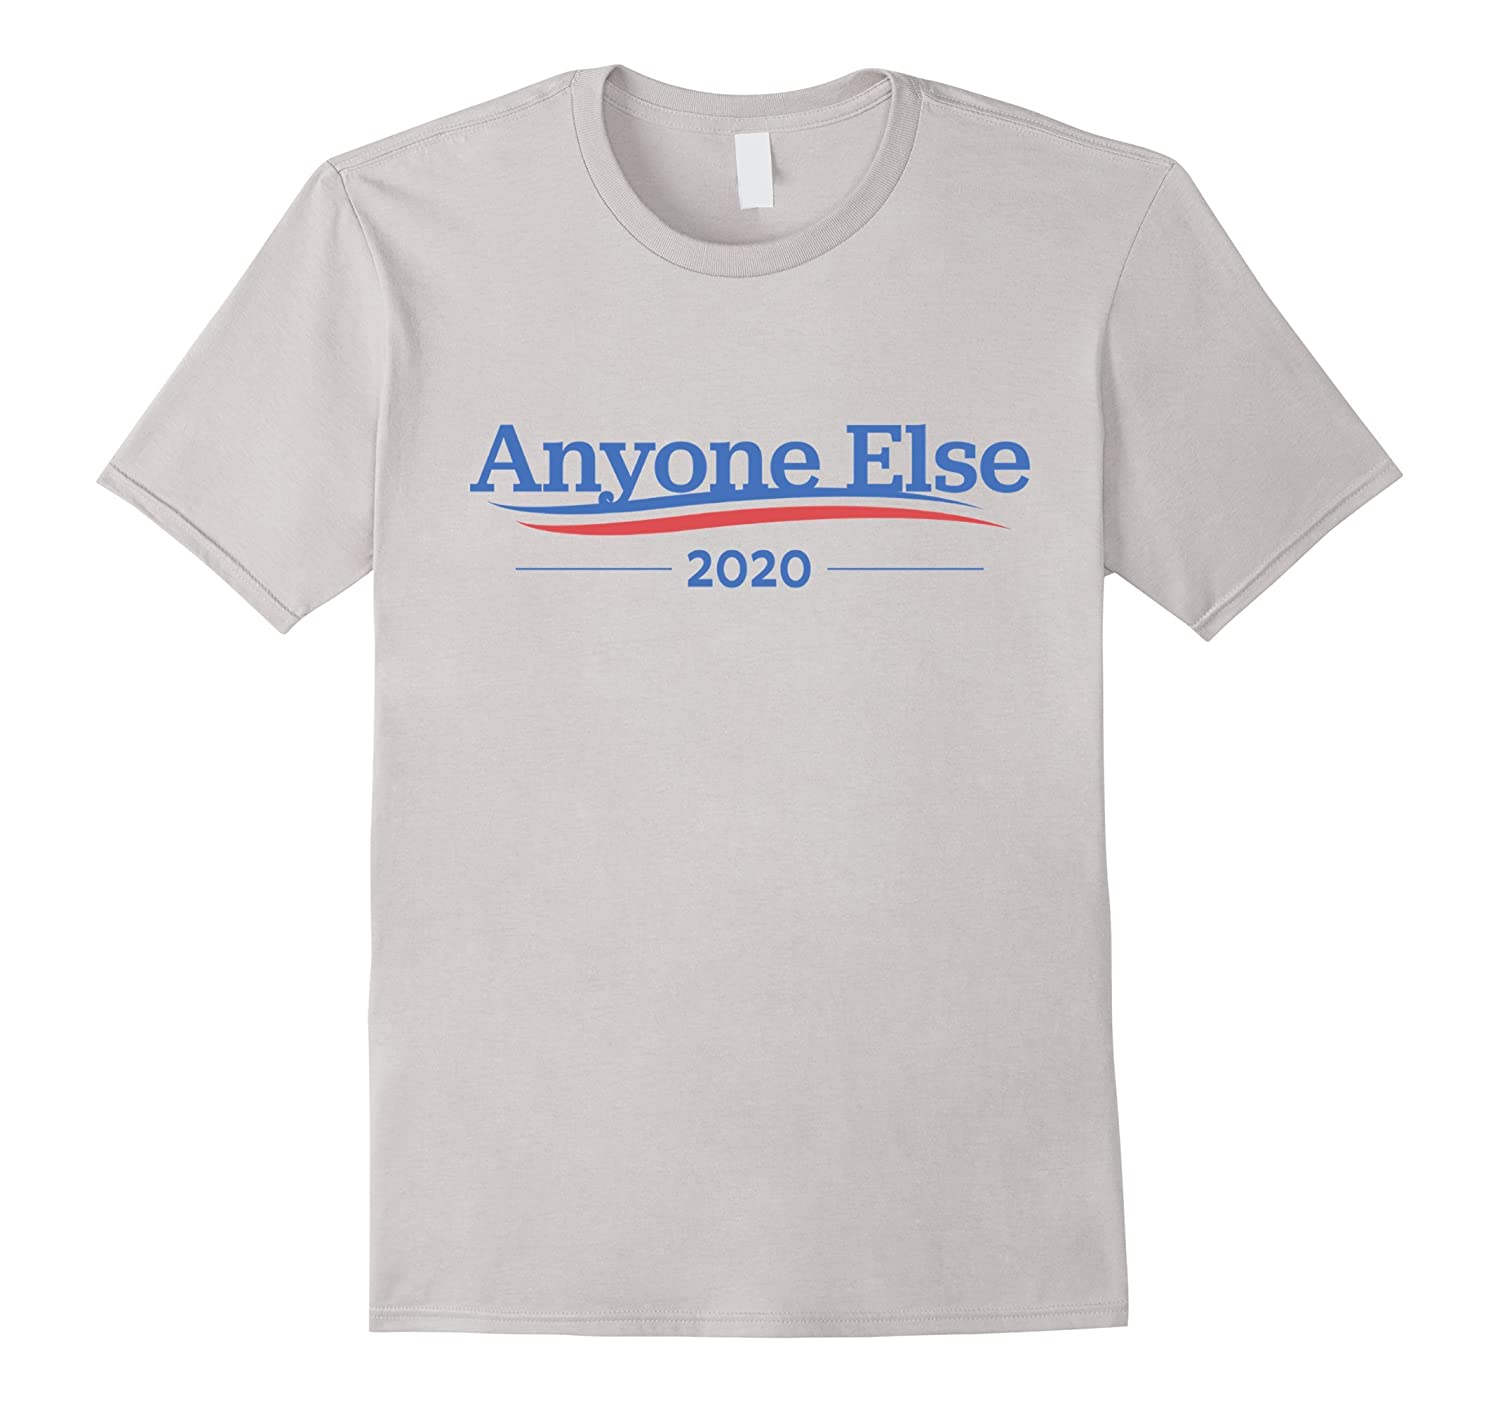 062ef67c6 Anyone Else or Bernie Sanders for President 2020 T-Shirt-CL – Colamaga